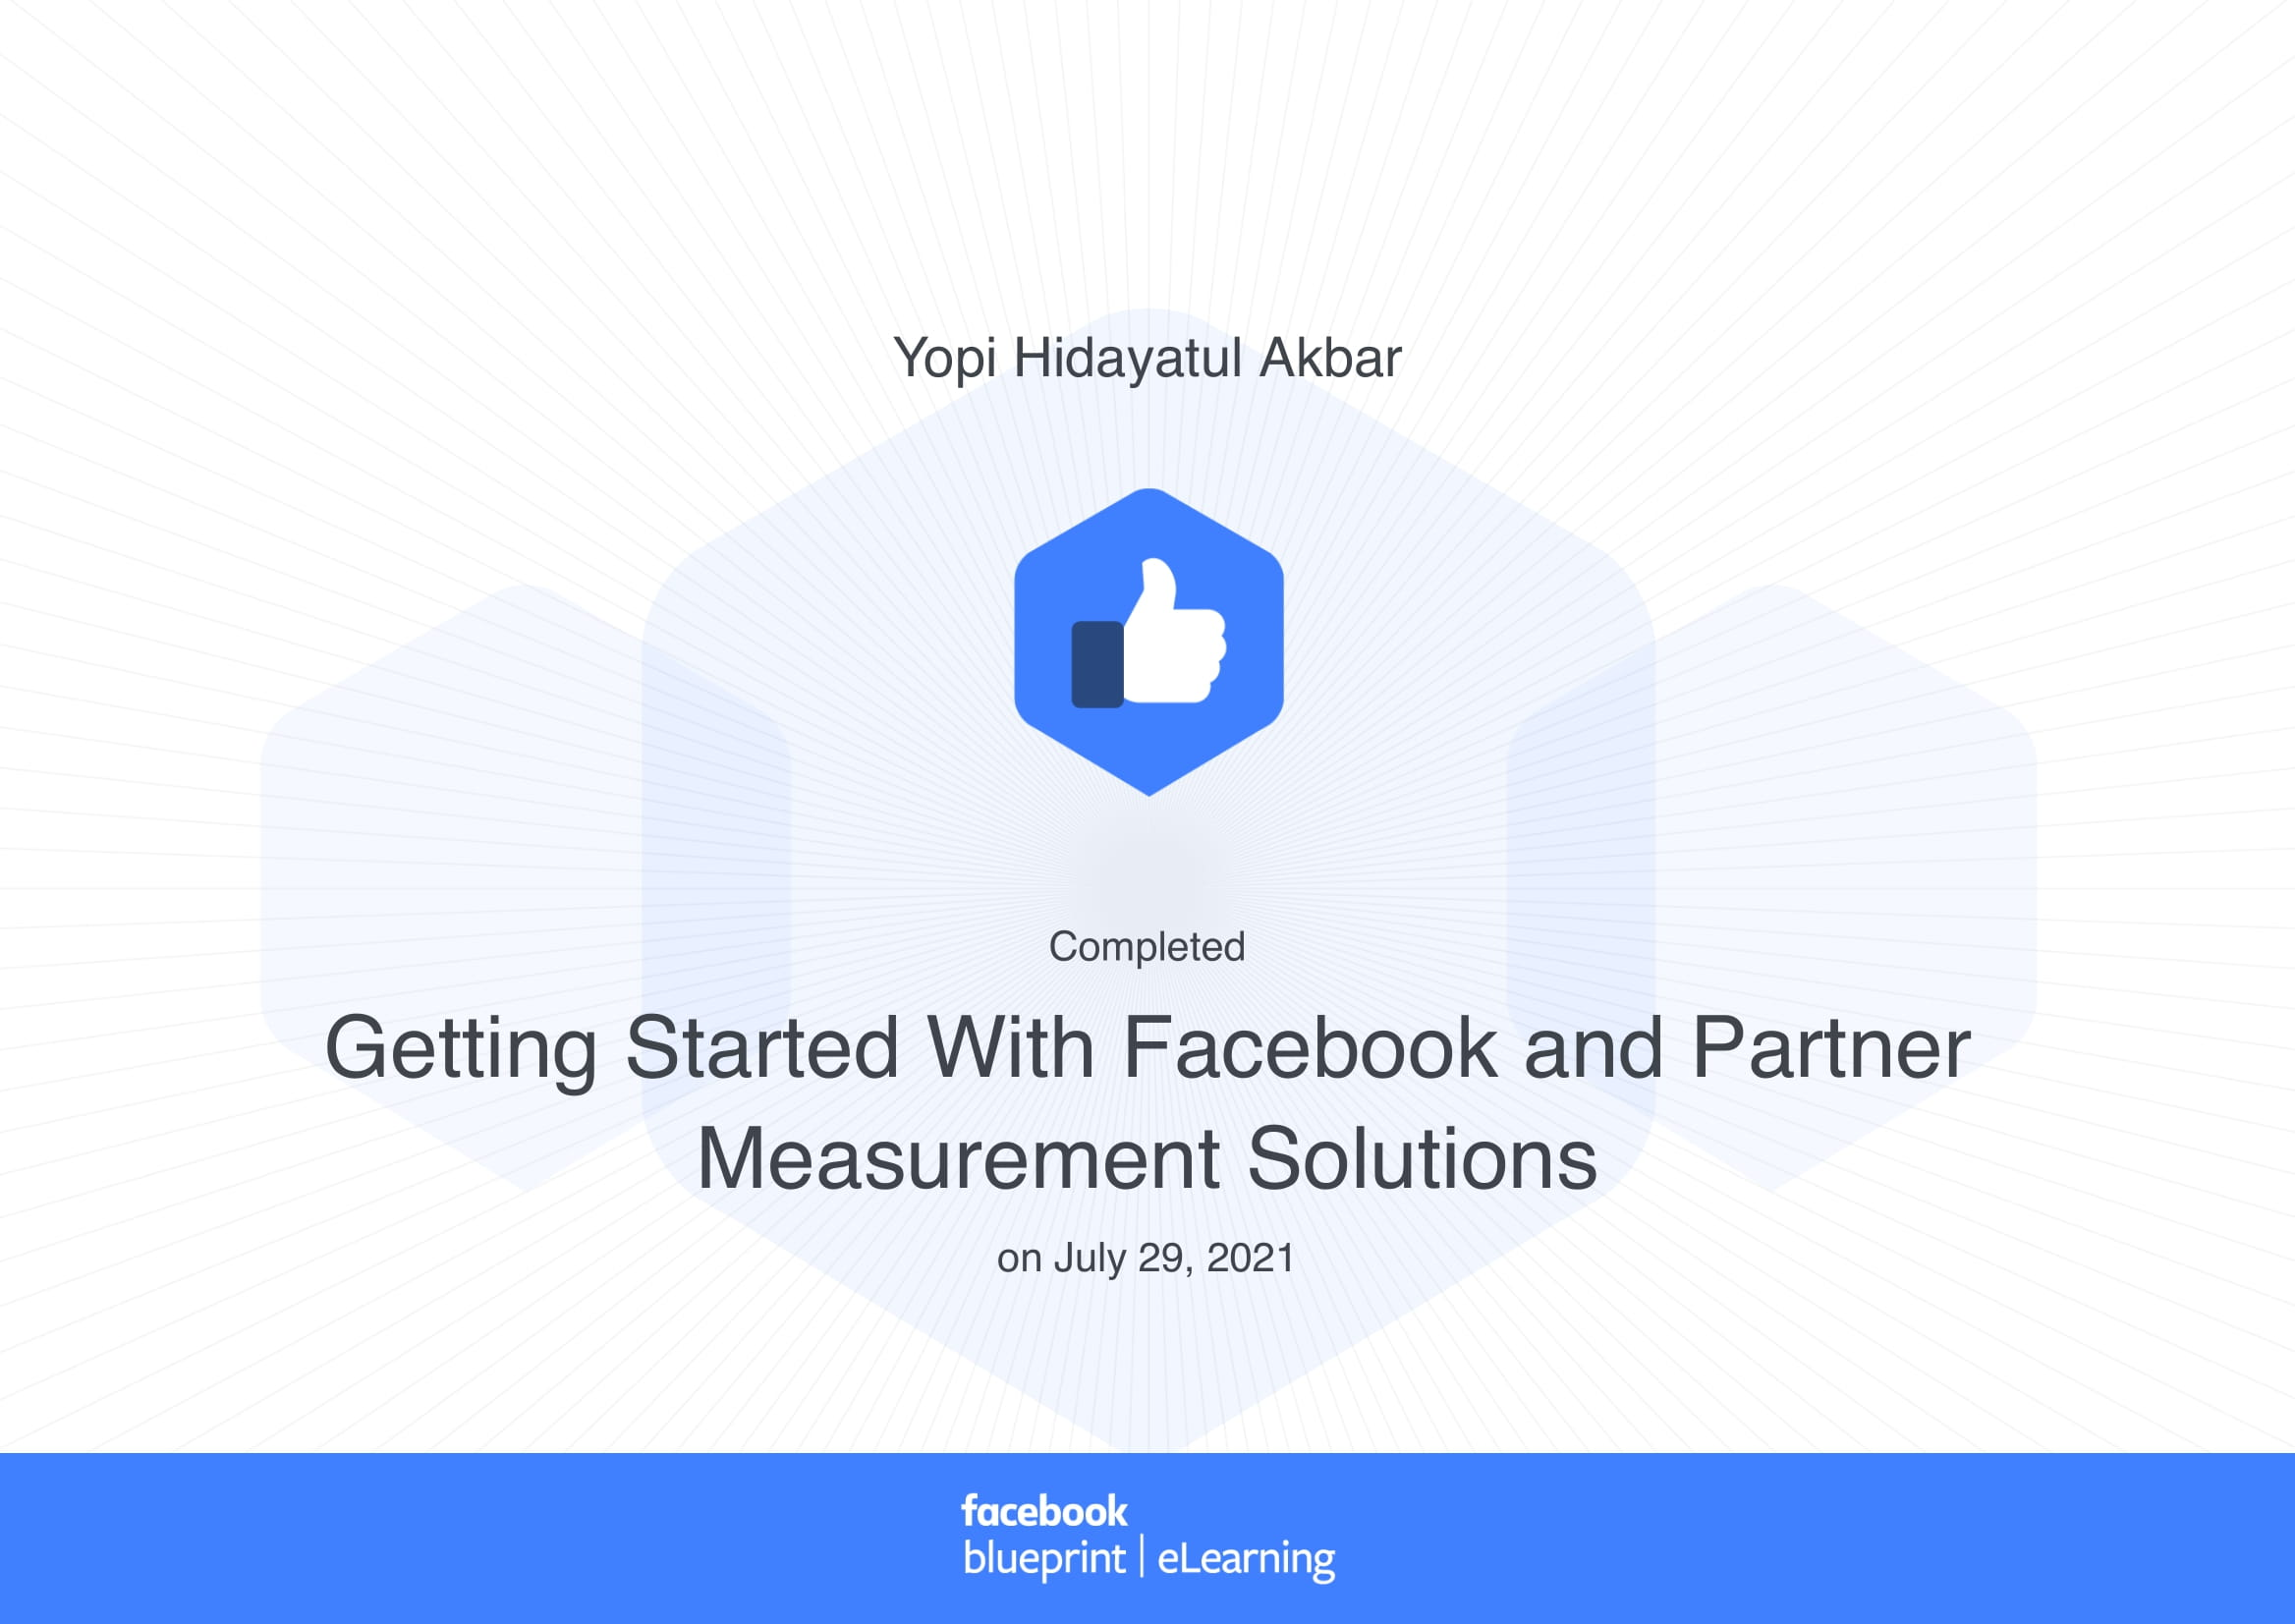 Getting Started With Facebook and Partner Measurement Solutions _ Learn new skills to build your brand or business-1